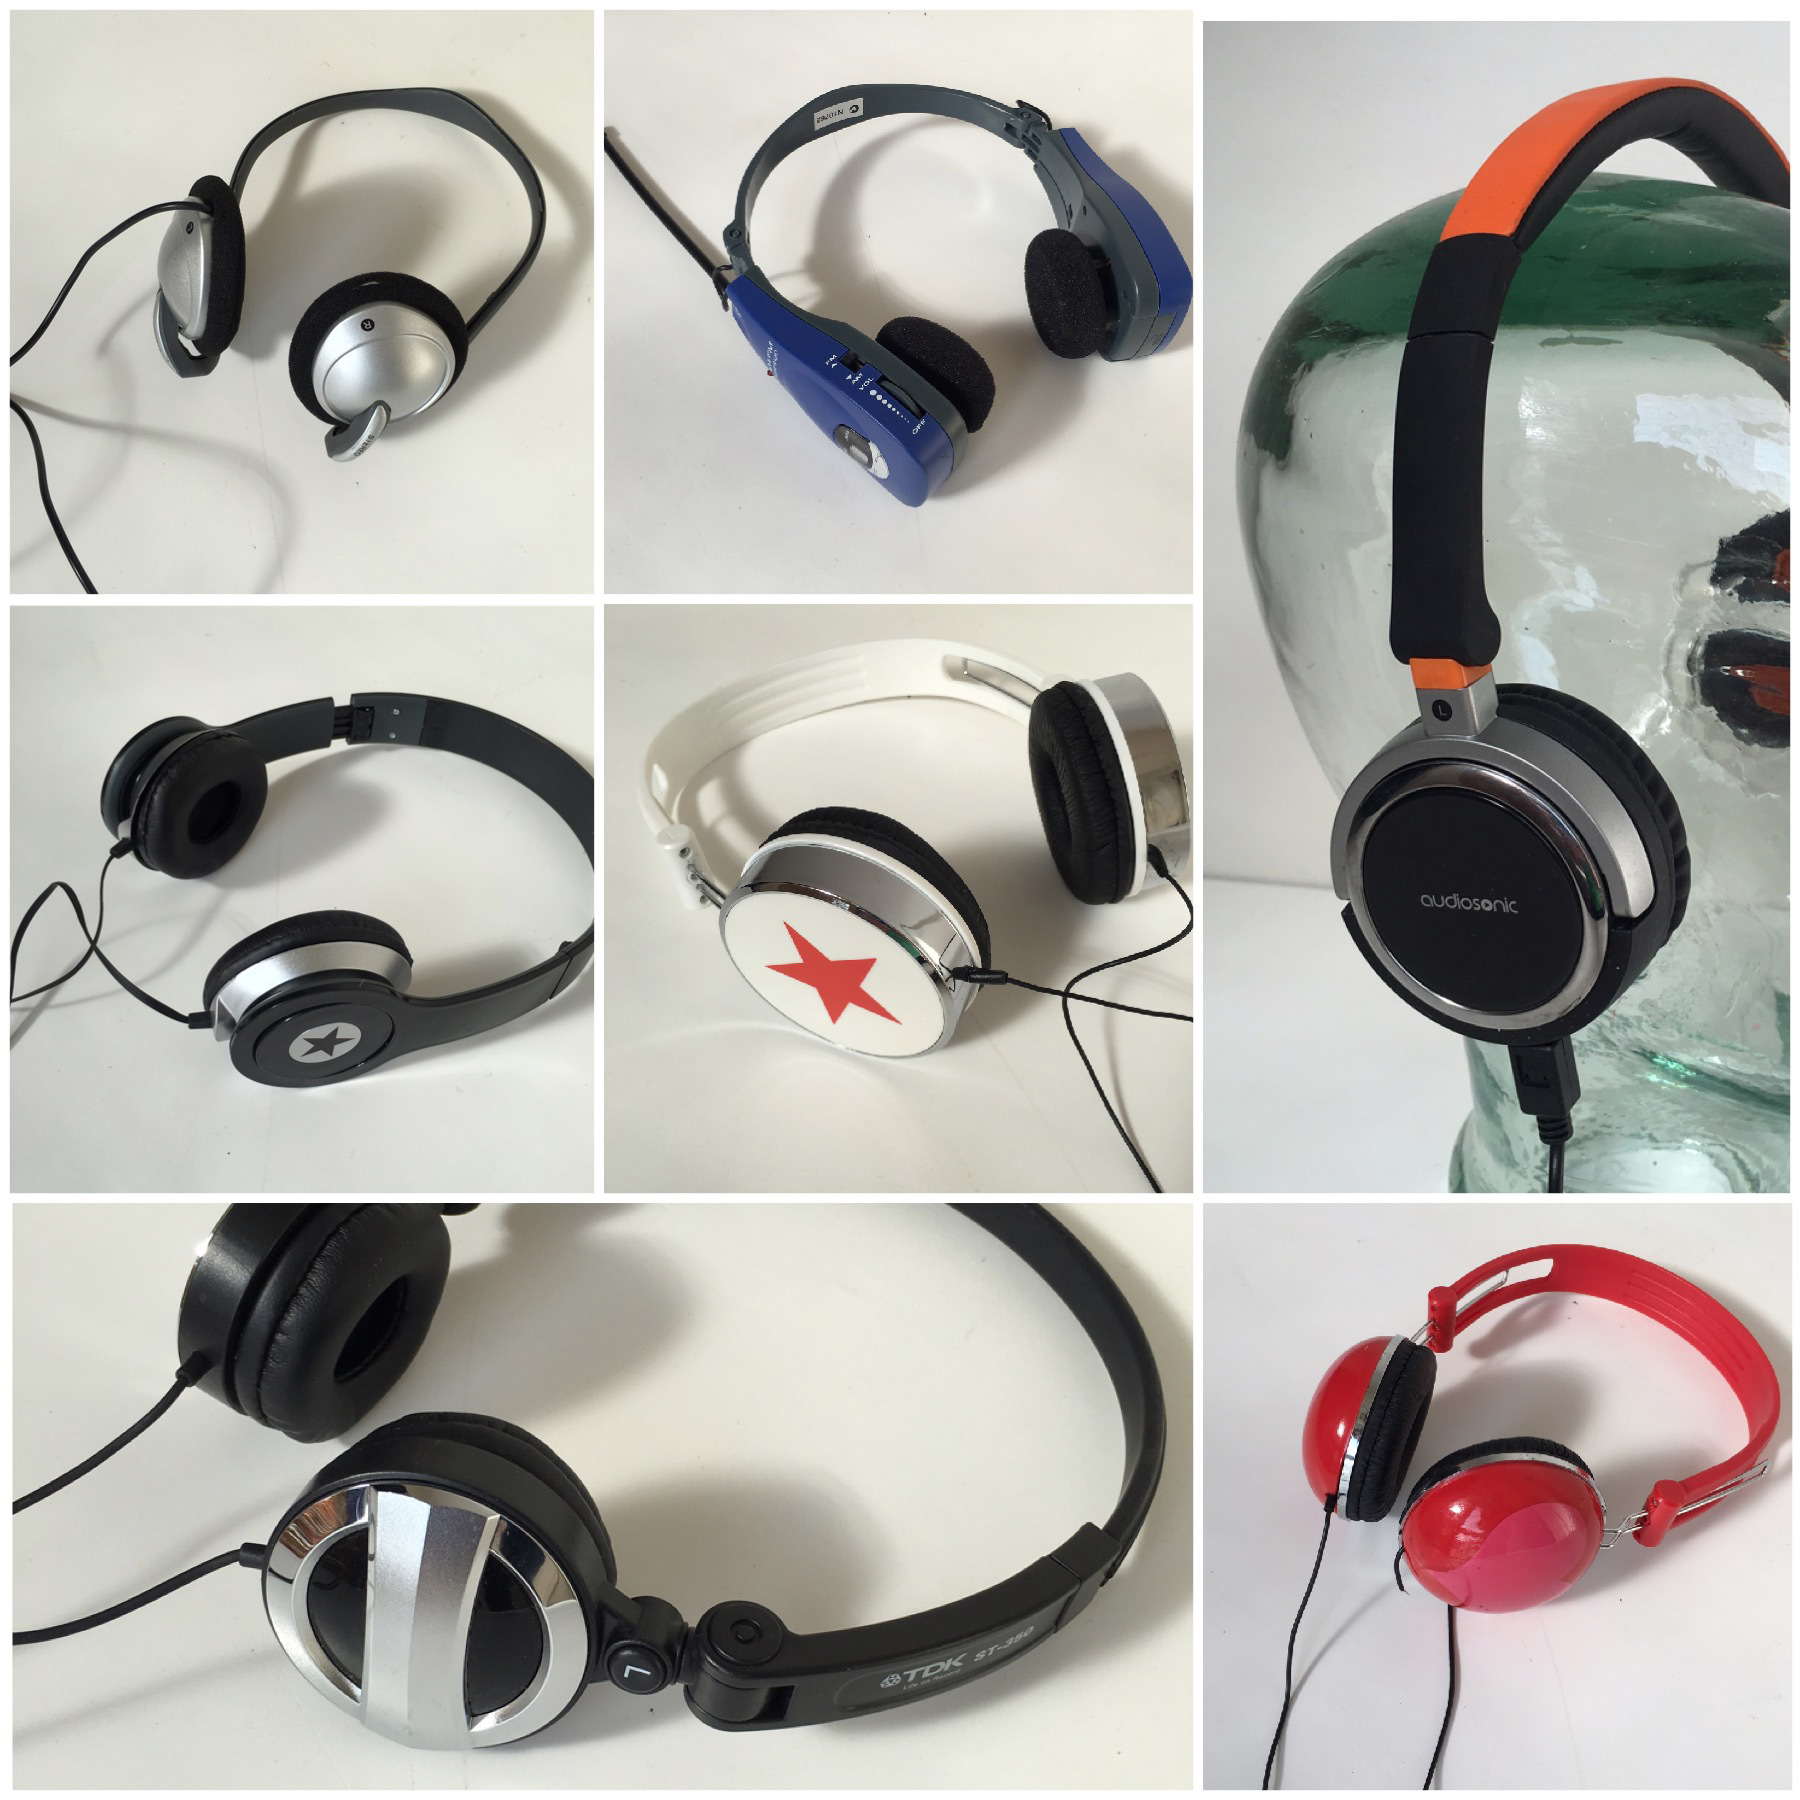 HEA0003 HEADPHONES, Novelty - Assorted $8.75